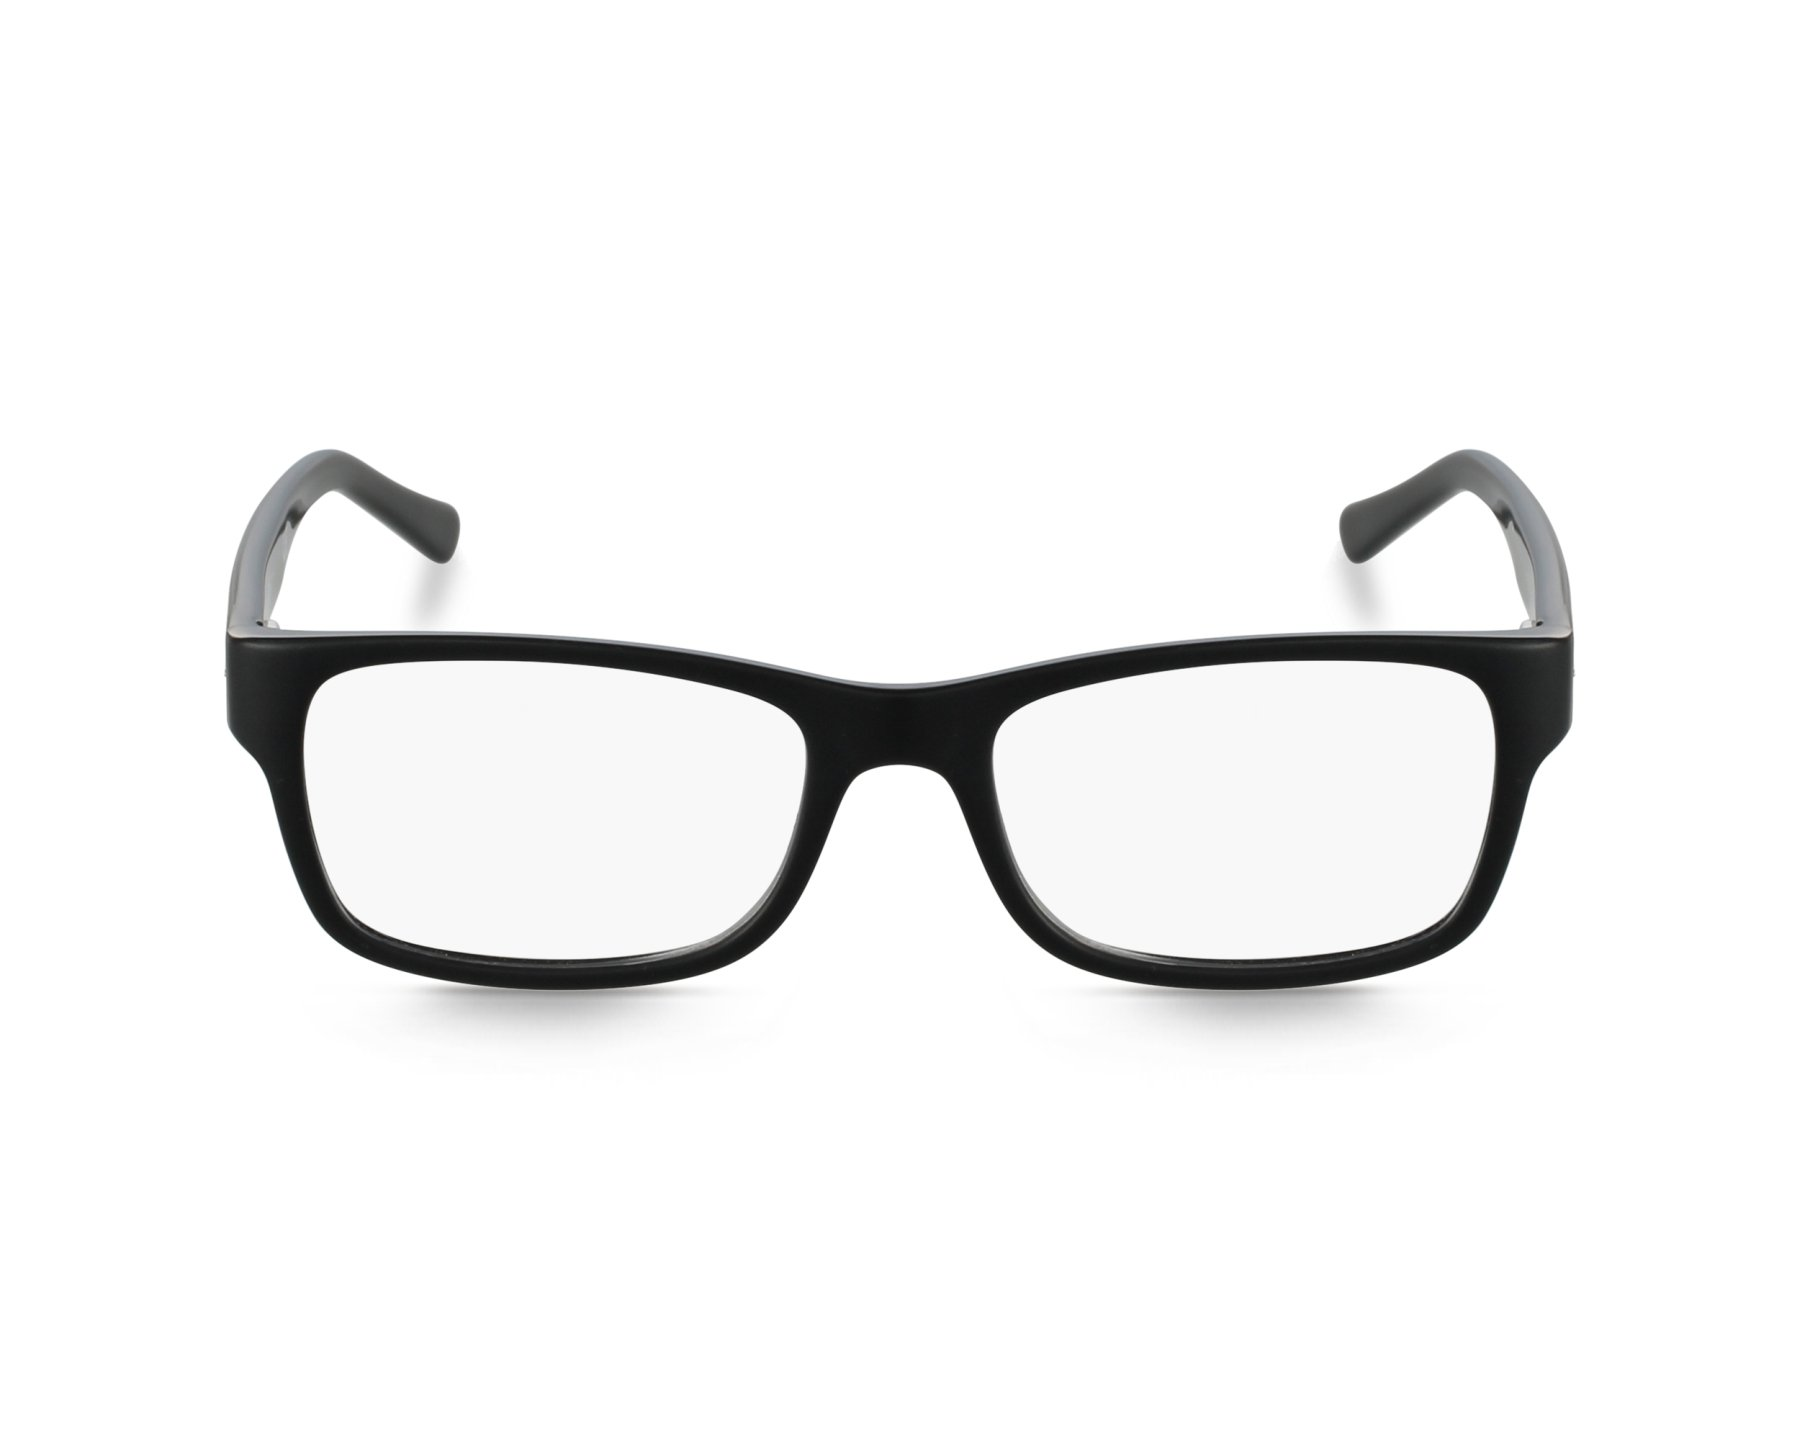 ab4cdef3d38 Ray Ban Brille Rb 5268